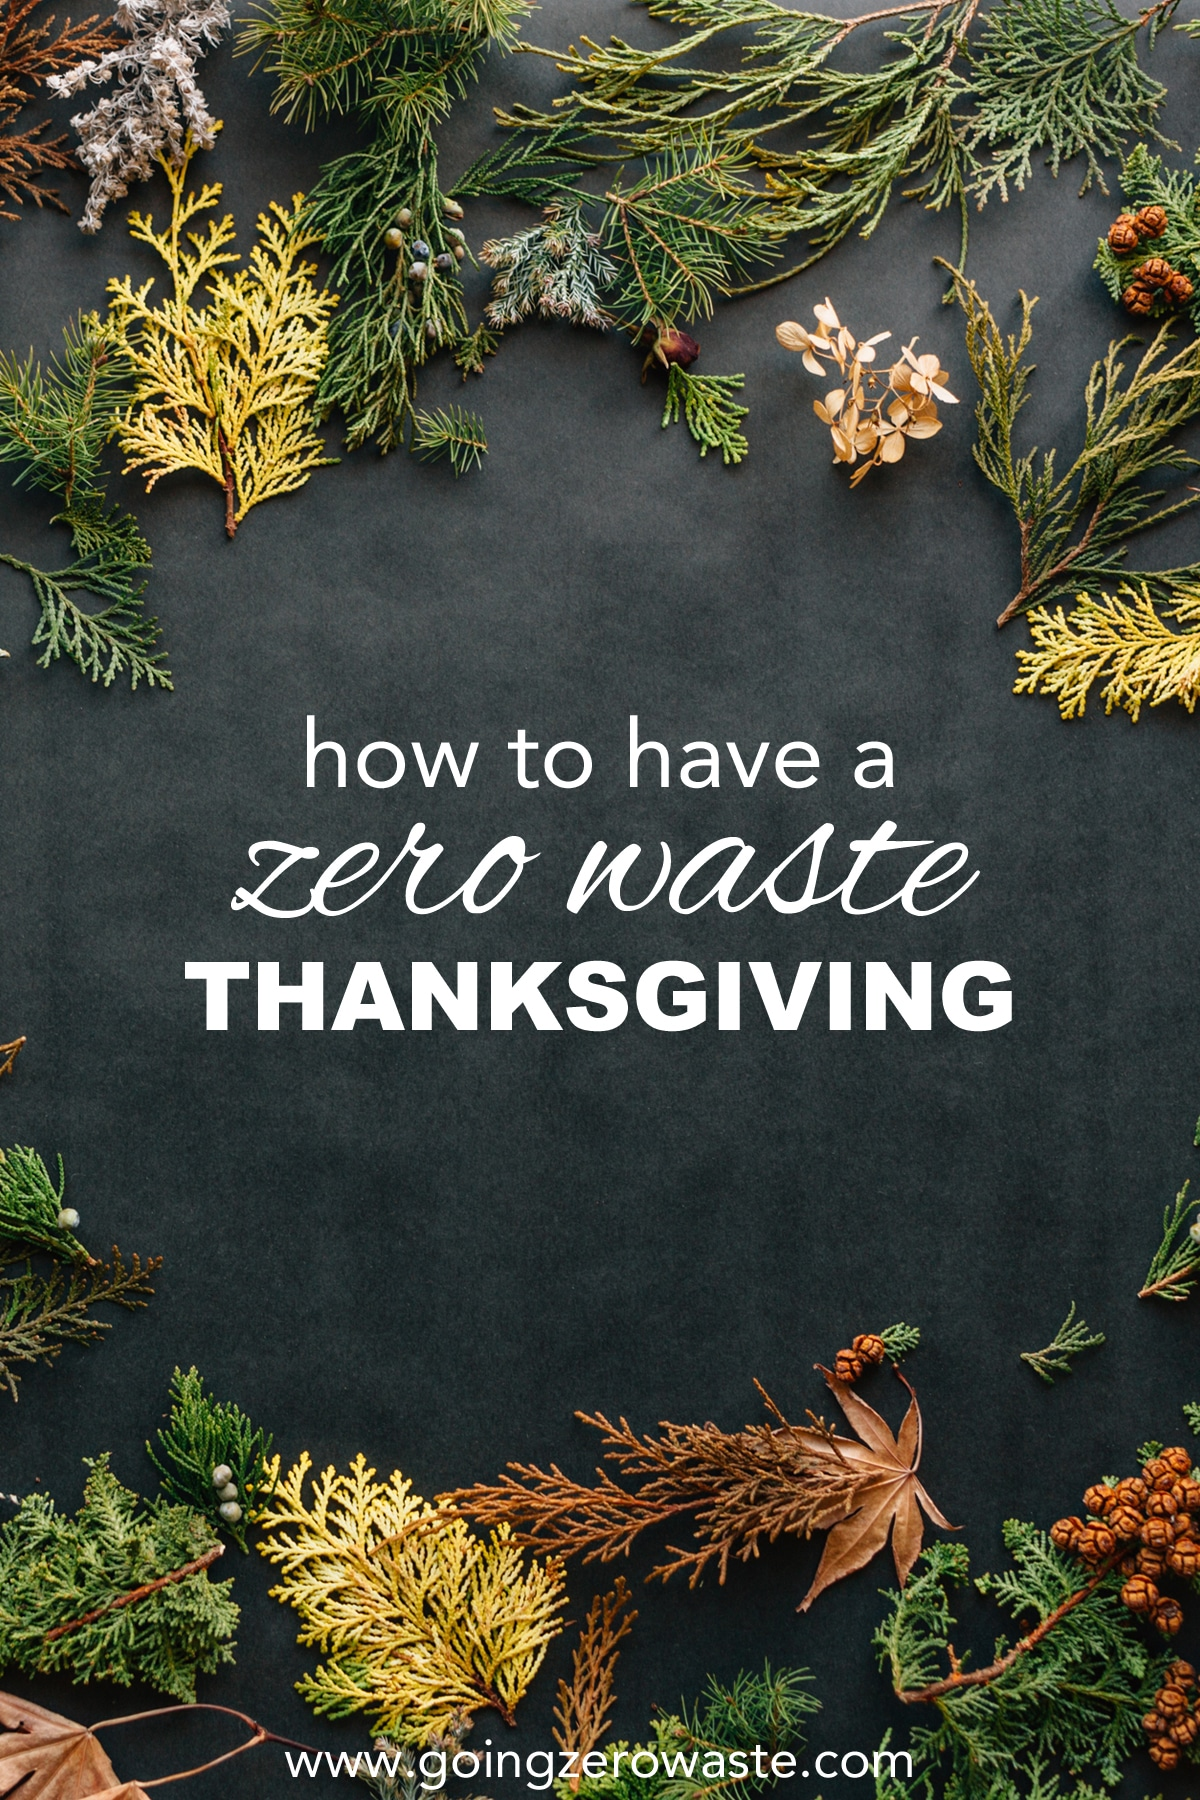 How to Have a Zero Waste Thanksgiving